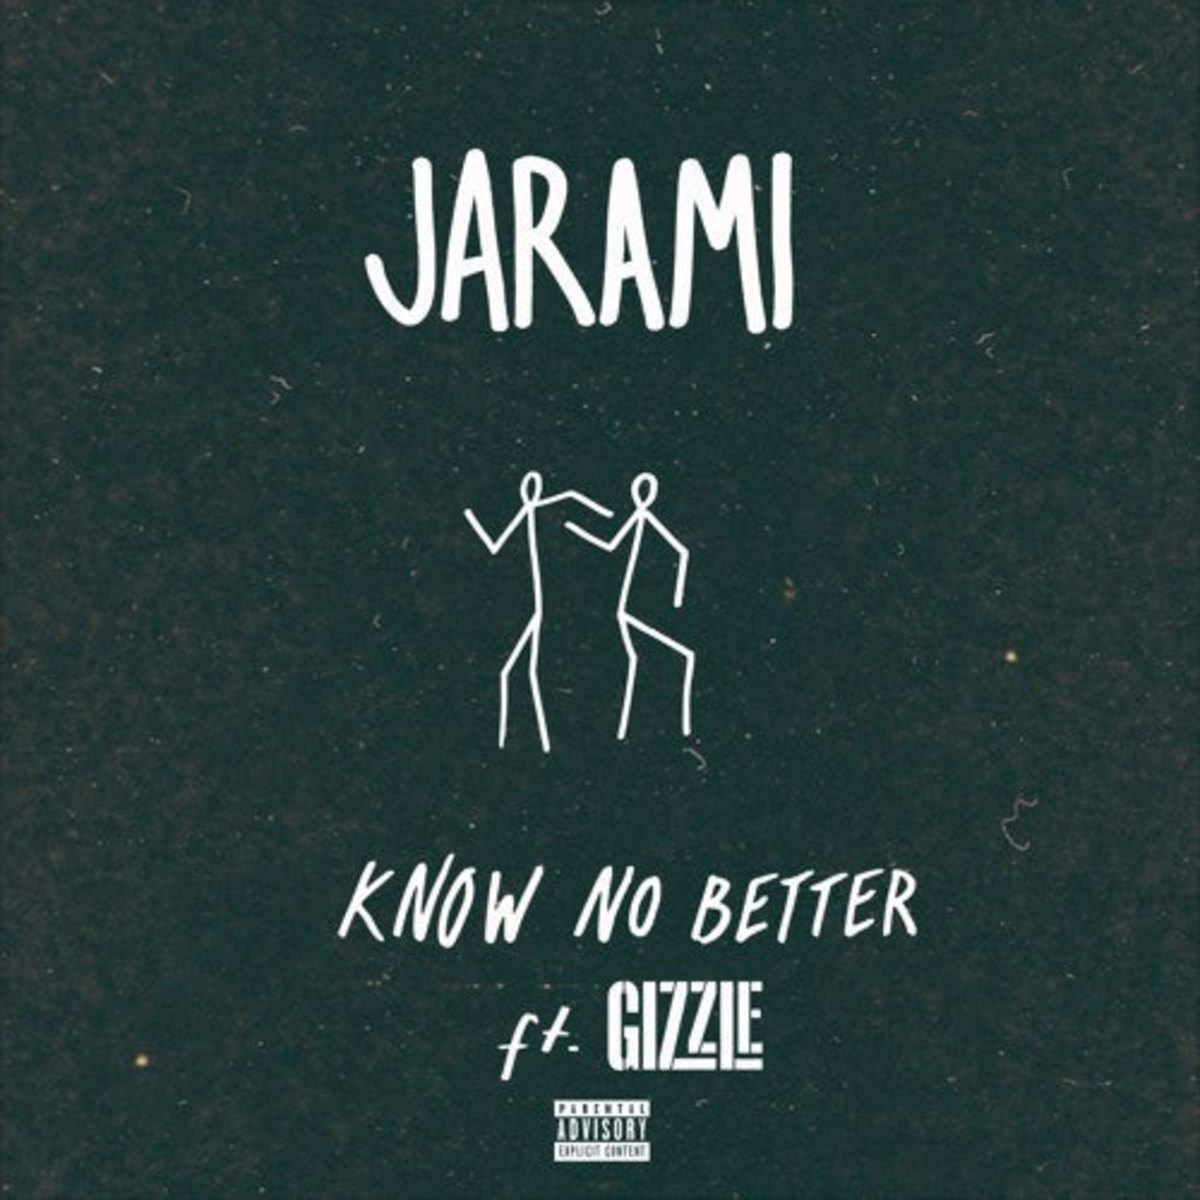 jarami-know-no-better.jpg